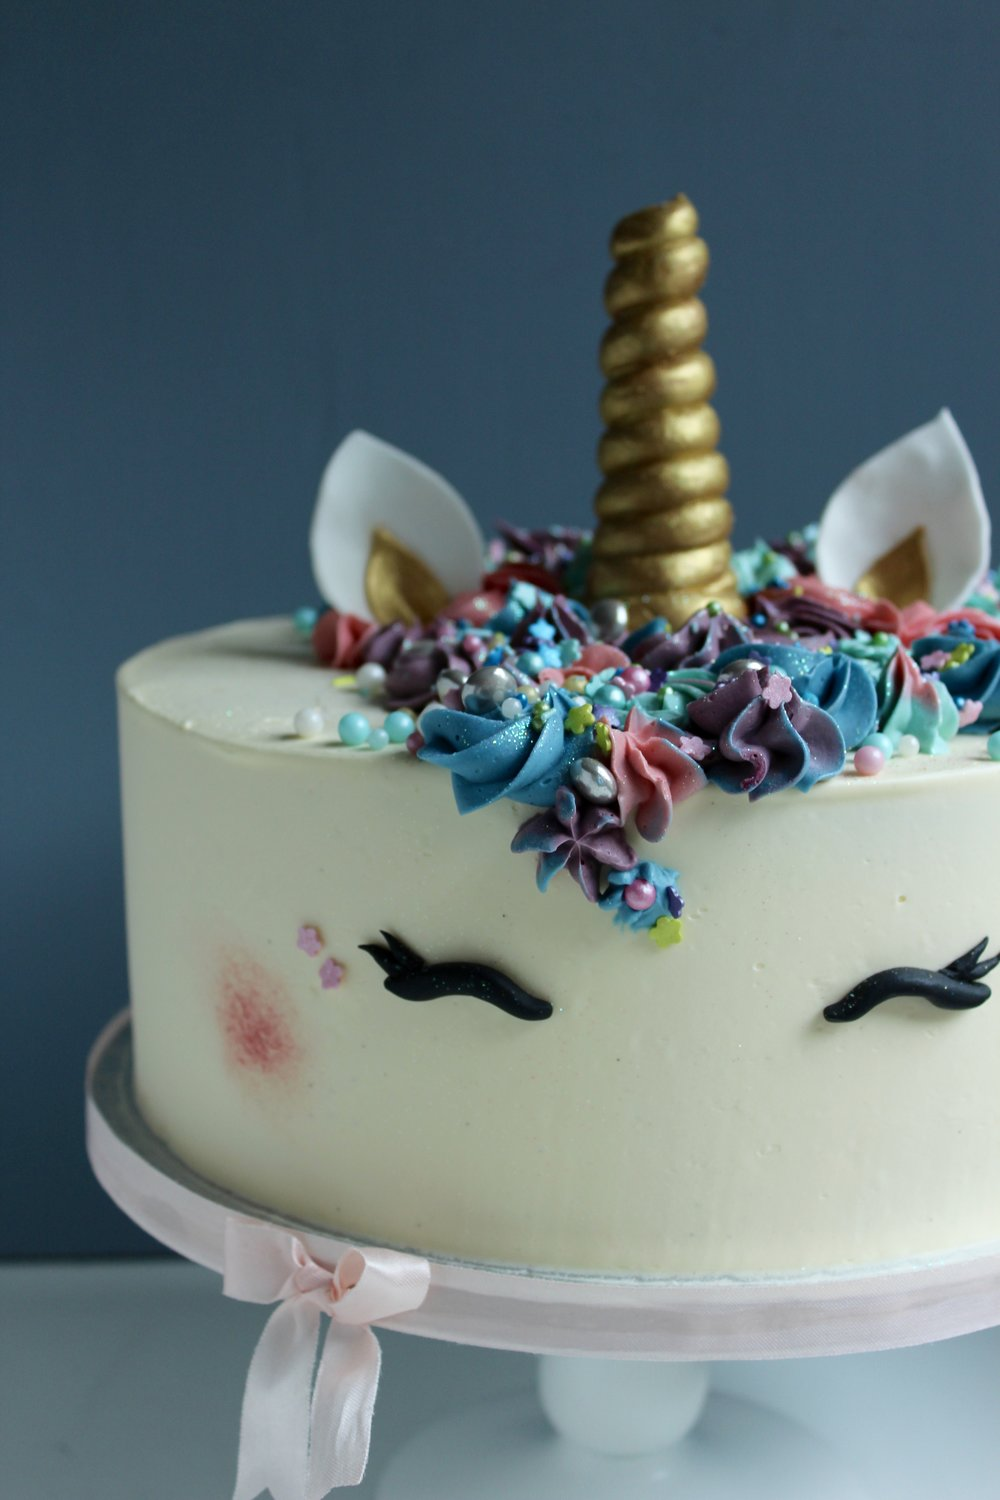 Unicorn Celebration Cake by Yolk. www.cakesbyyolk.com